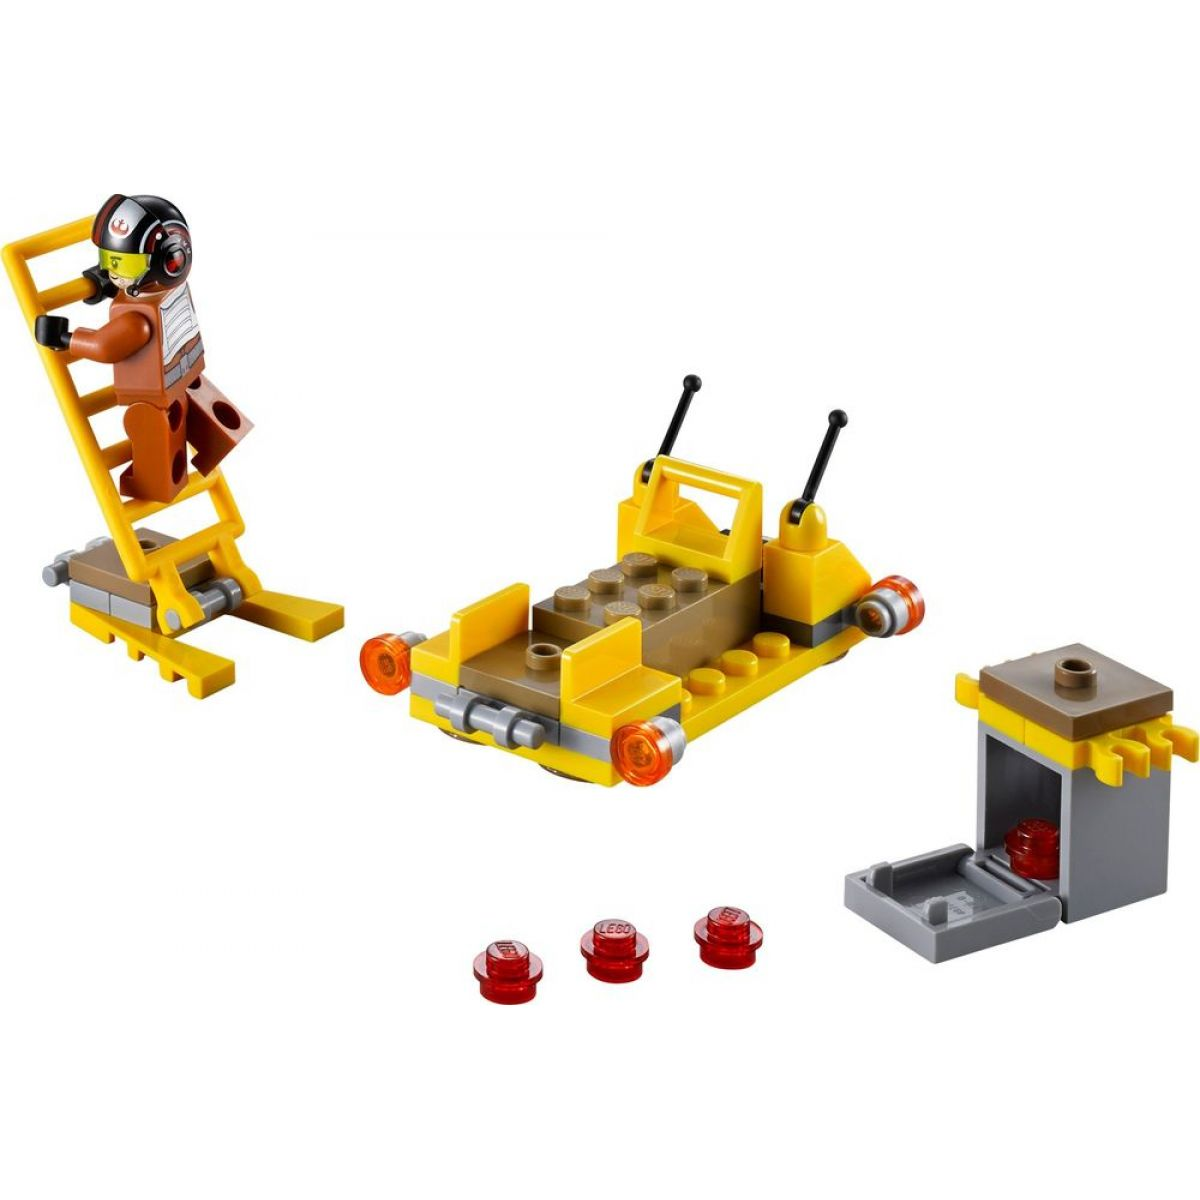 LEGO Star Wars 75102 Poe's X-Wing Fighter #4